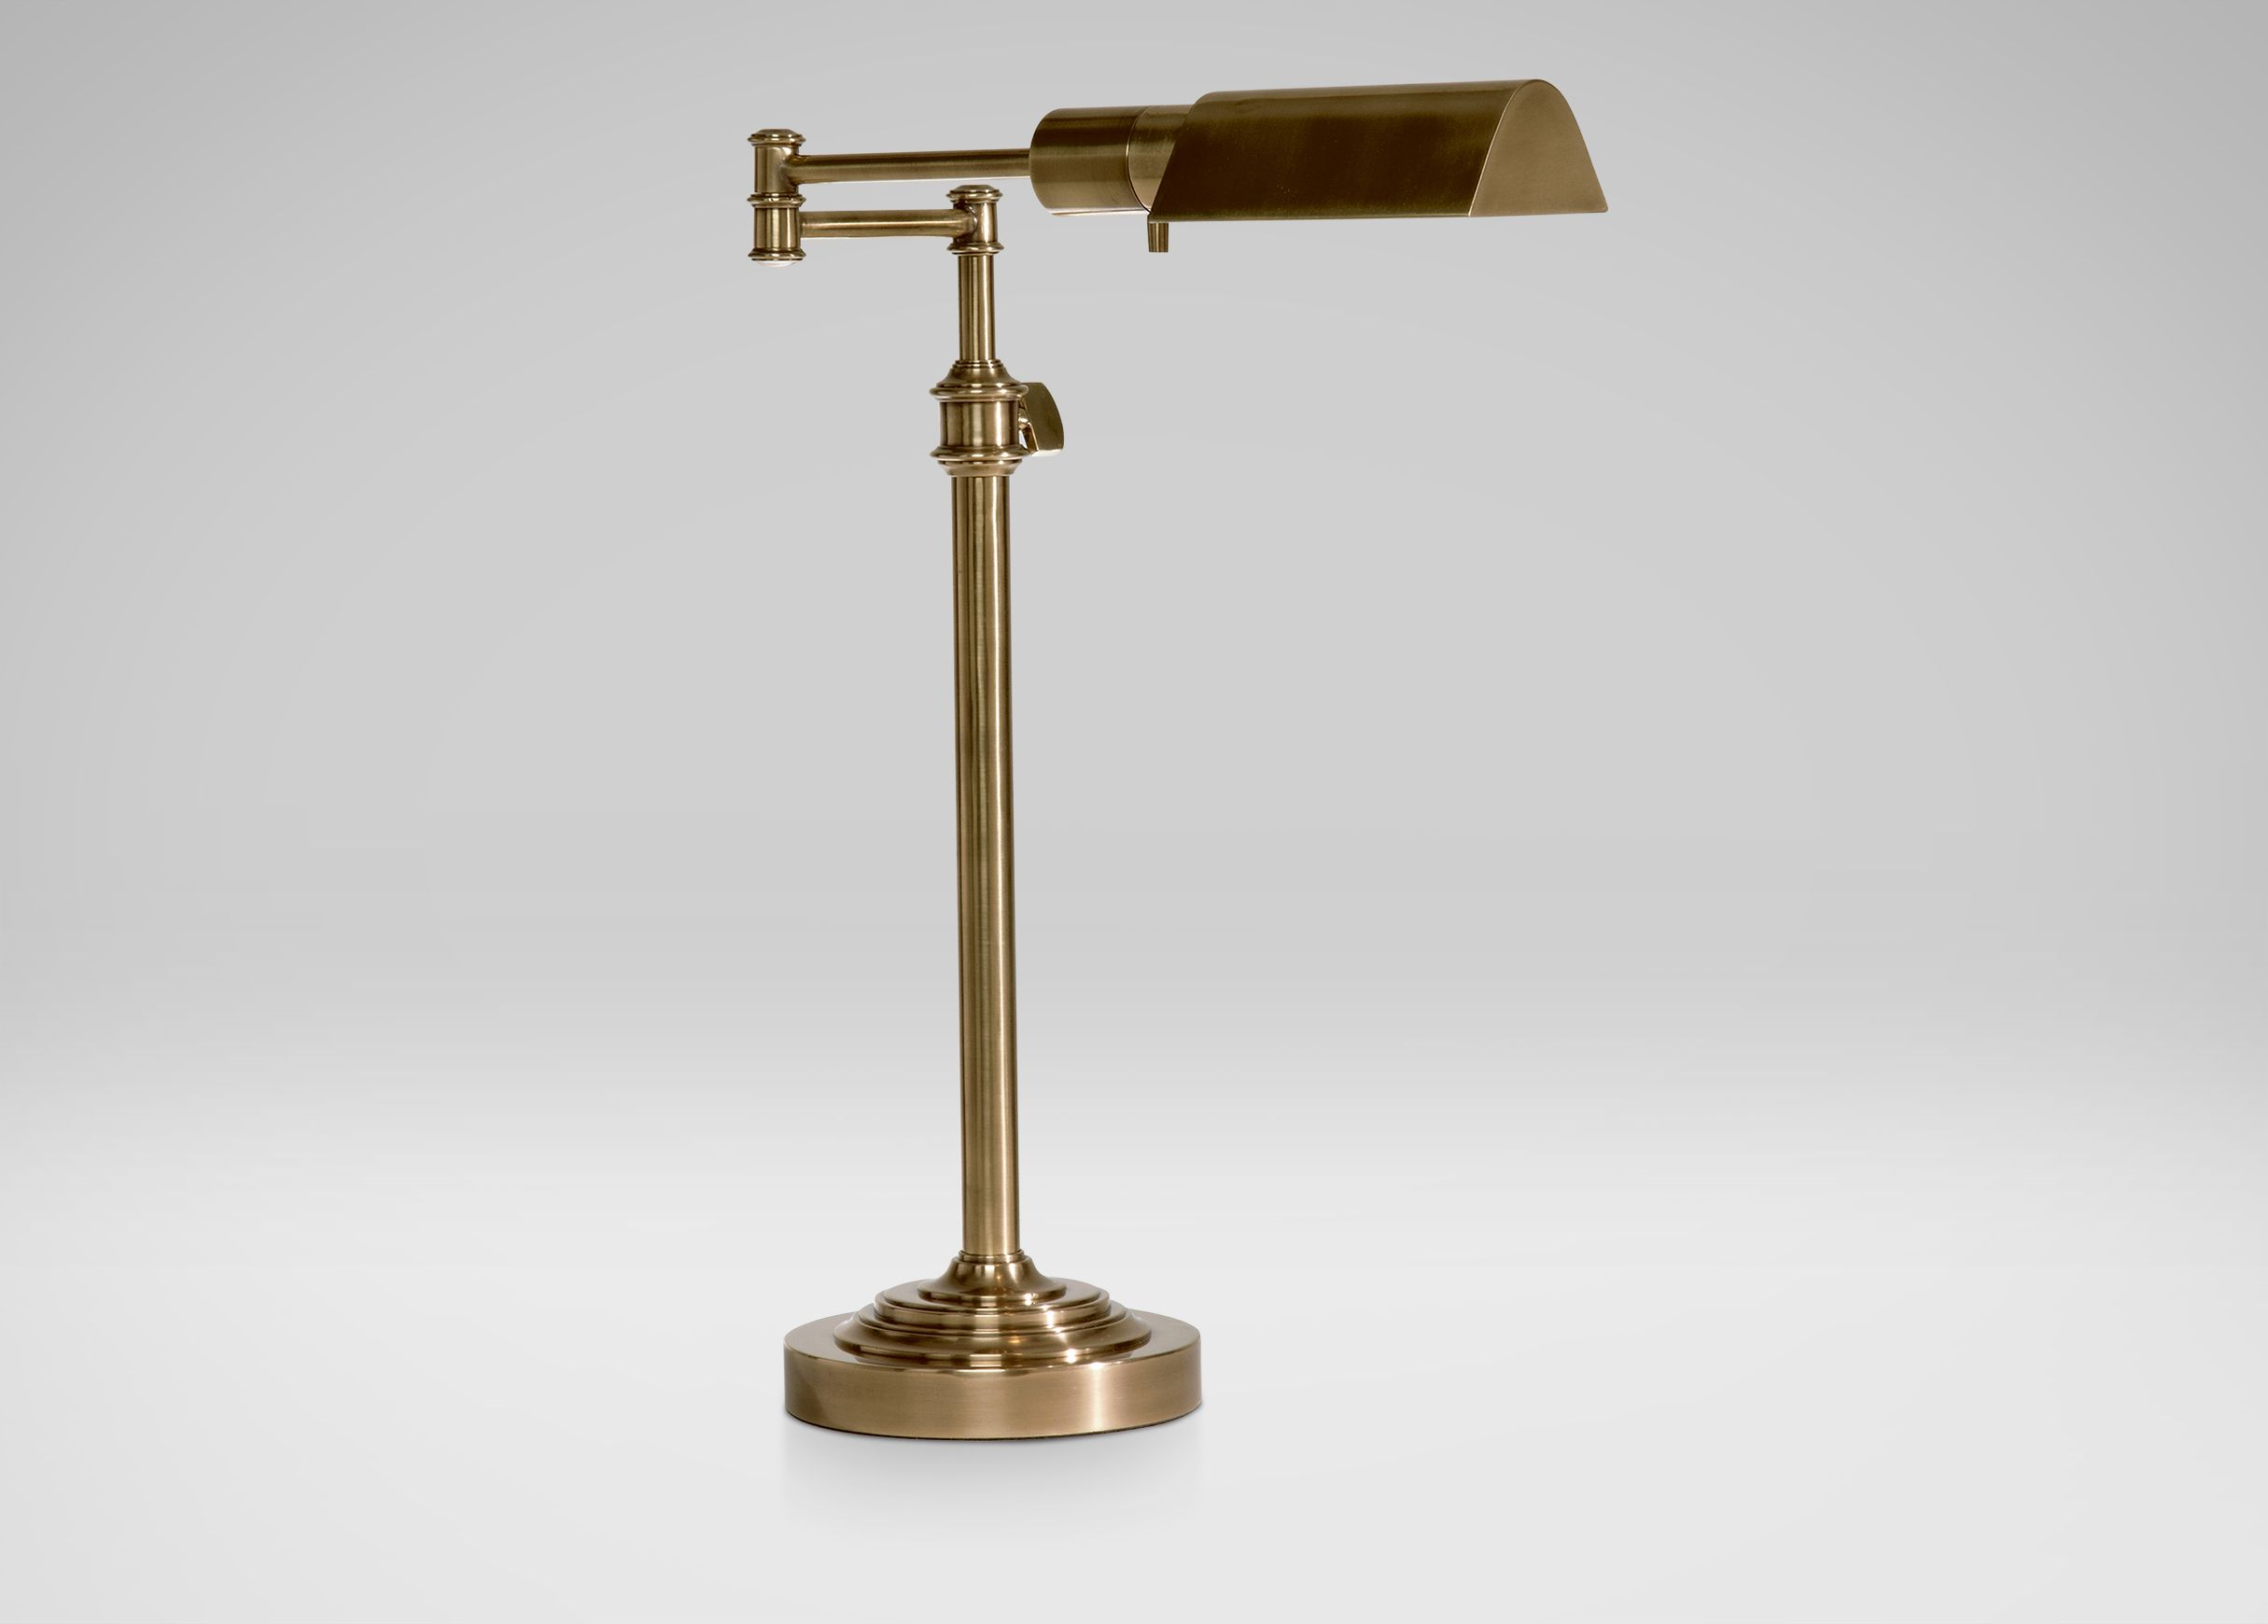 Brass Pharmacy Desk Lamp   Ethan Allen